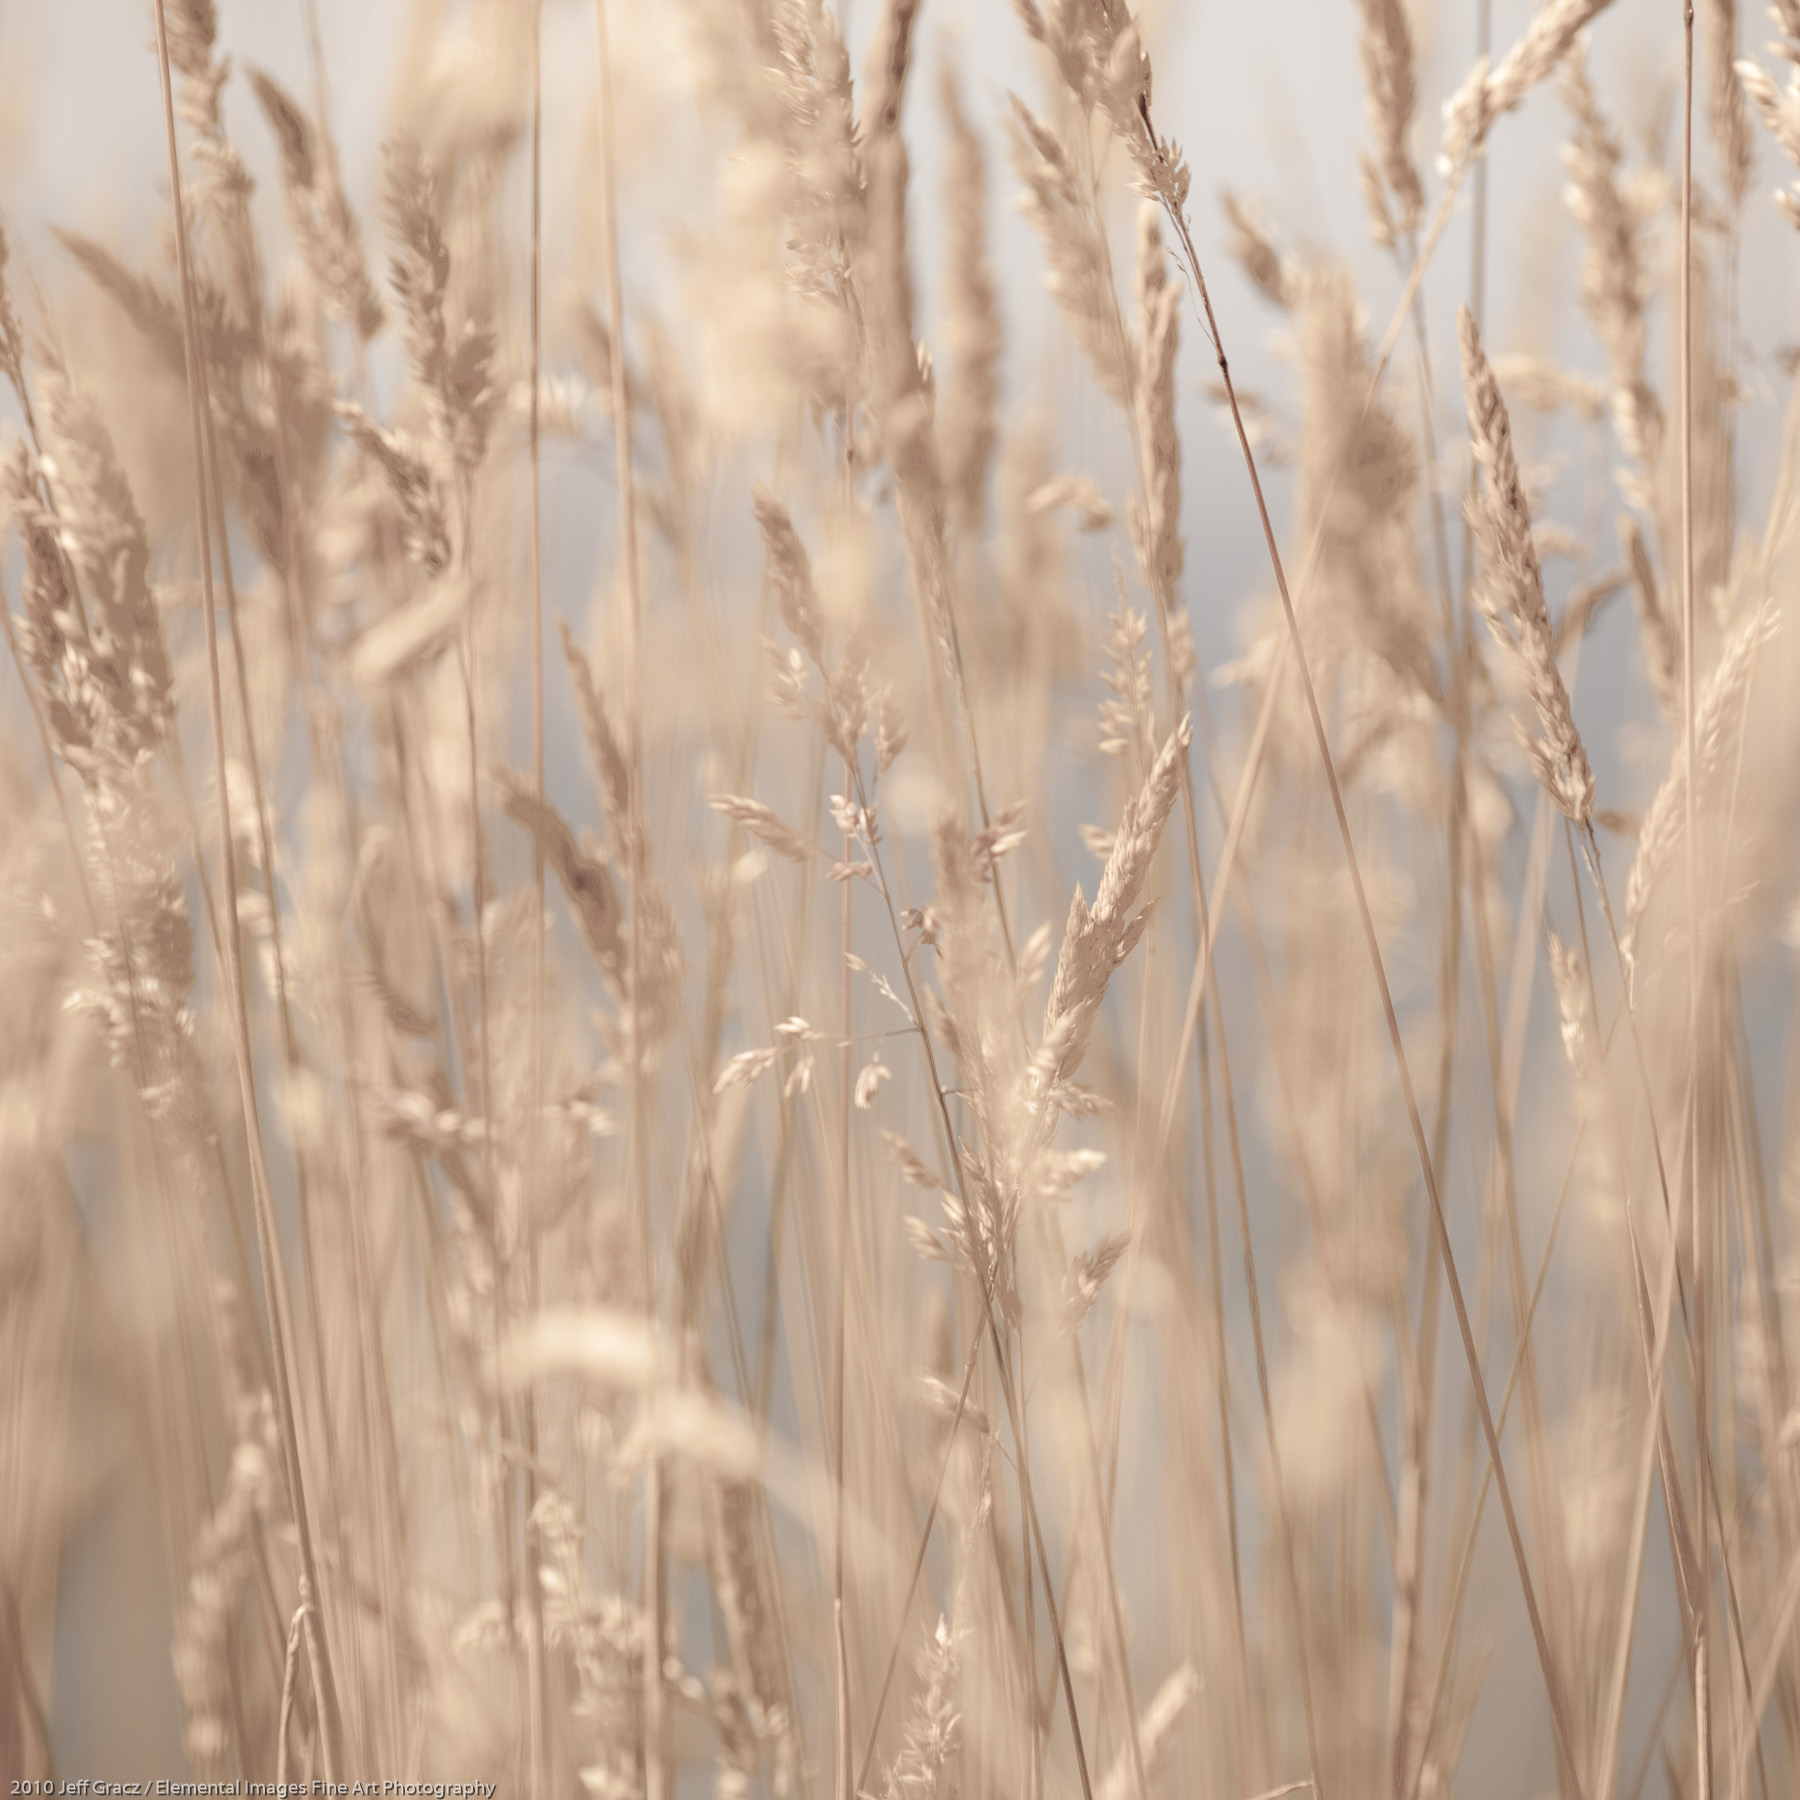 Grasses XXXIII |  |  |  - © 2010 Jeff Gracz / Elemental Images Fine Art Photography - All Rights Reserved Worldwide